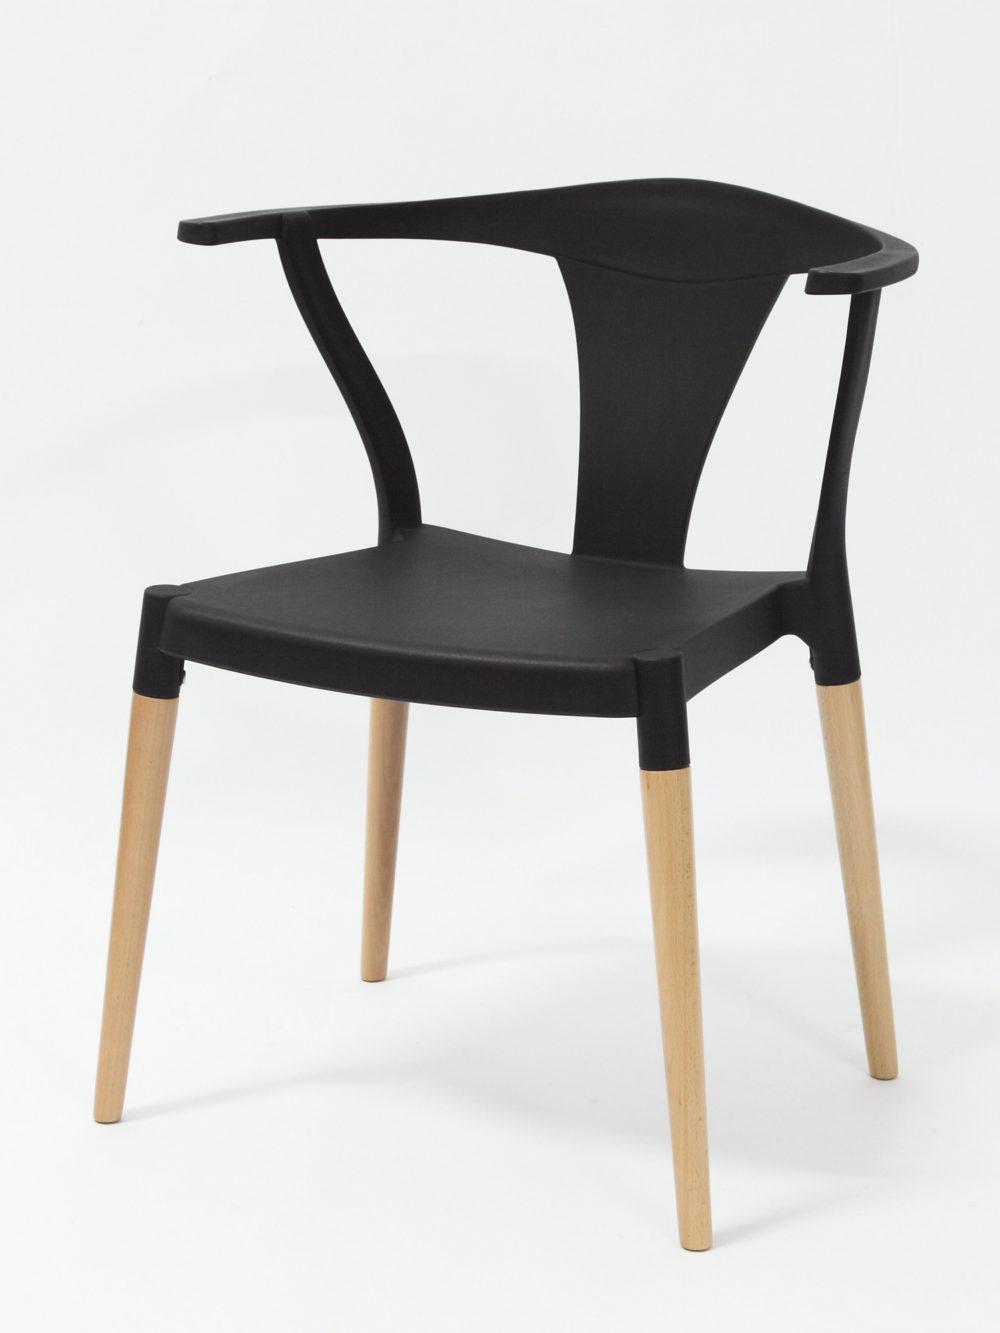 Commercial Seating Products